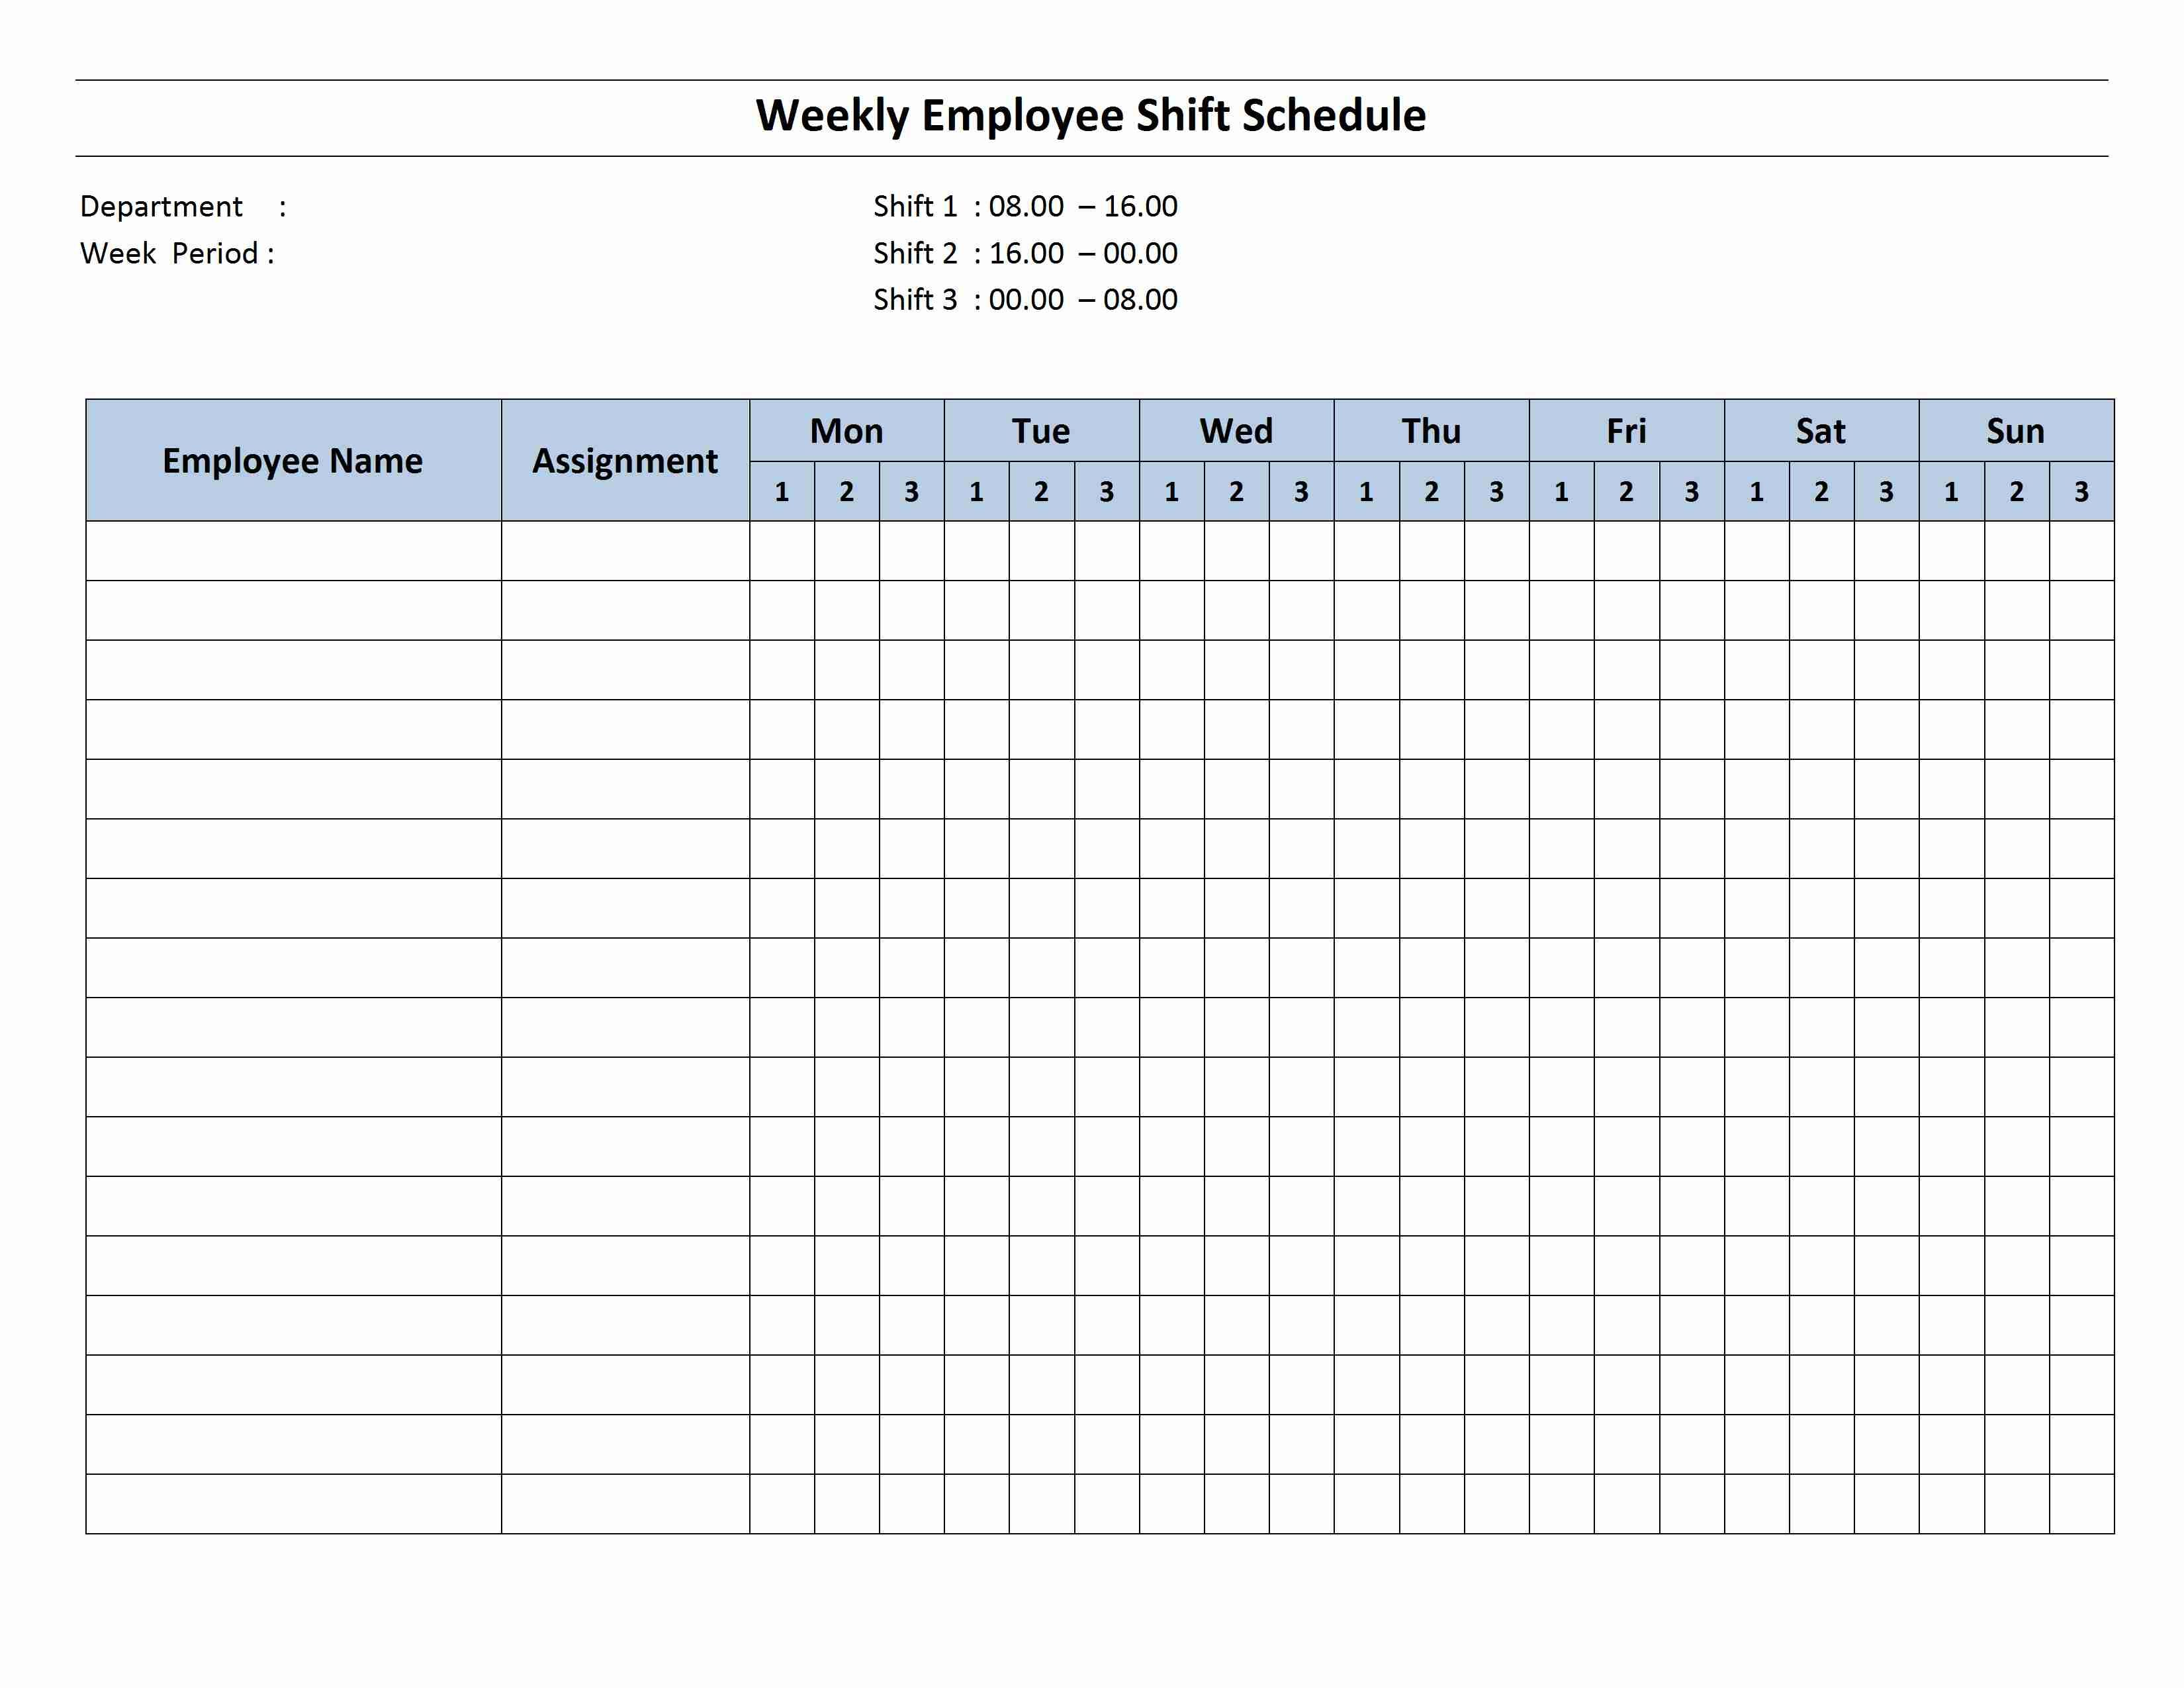 Free Monthly Work Schedule Template | Weekly Employee 8 Hour Shift - Free Printable Blank Work Schedules